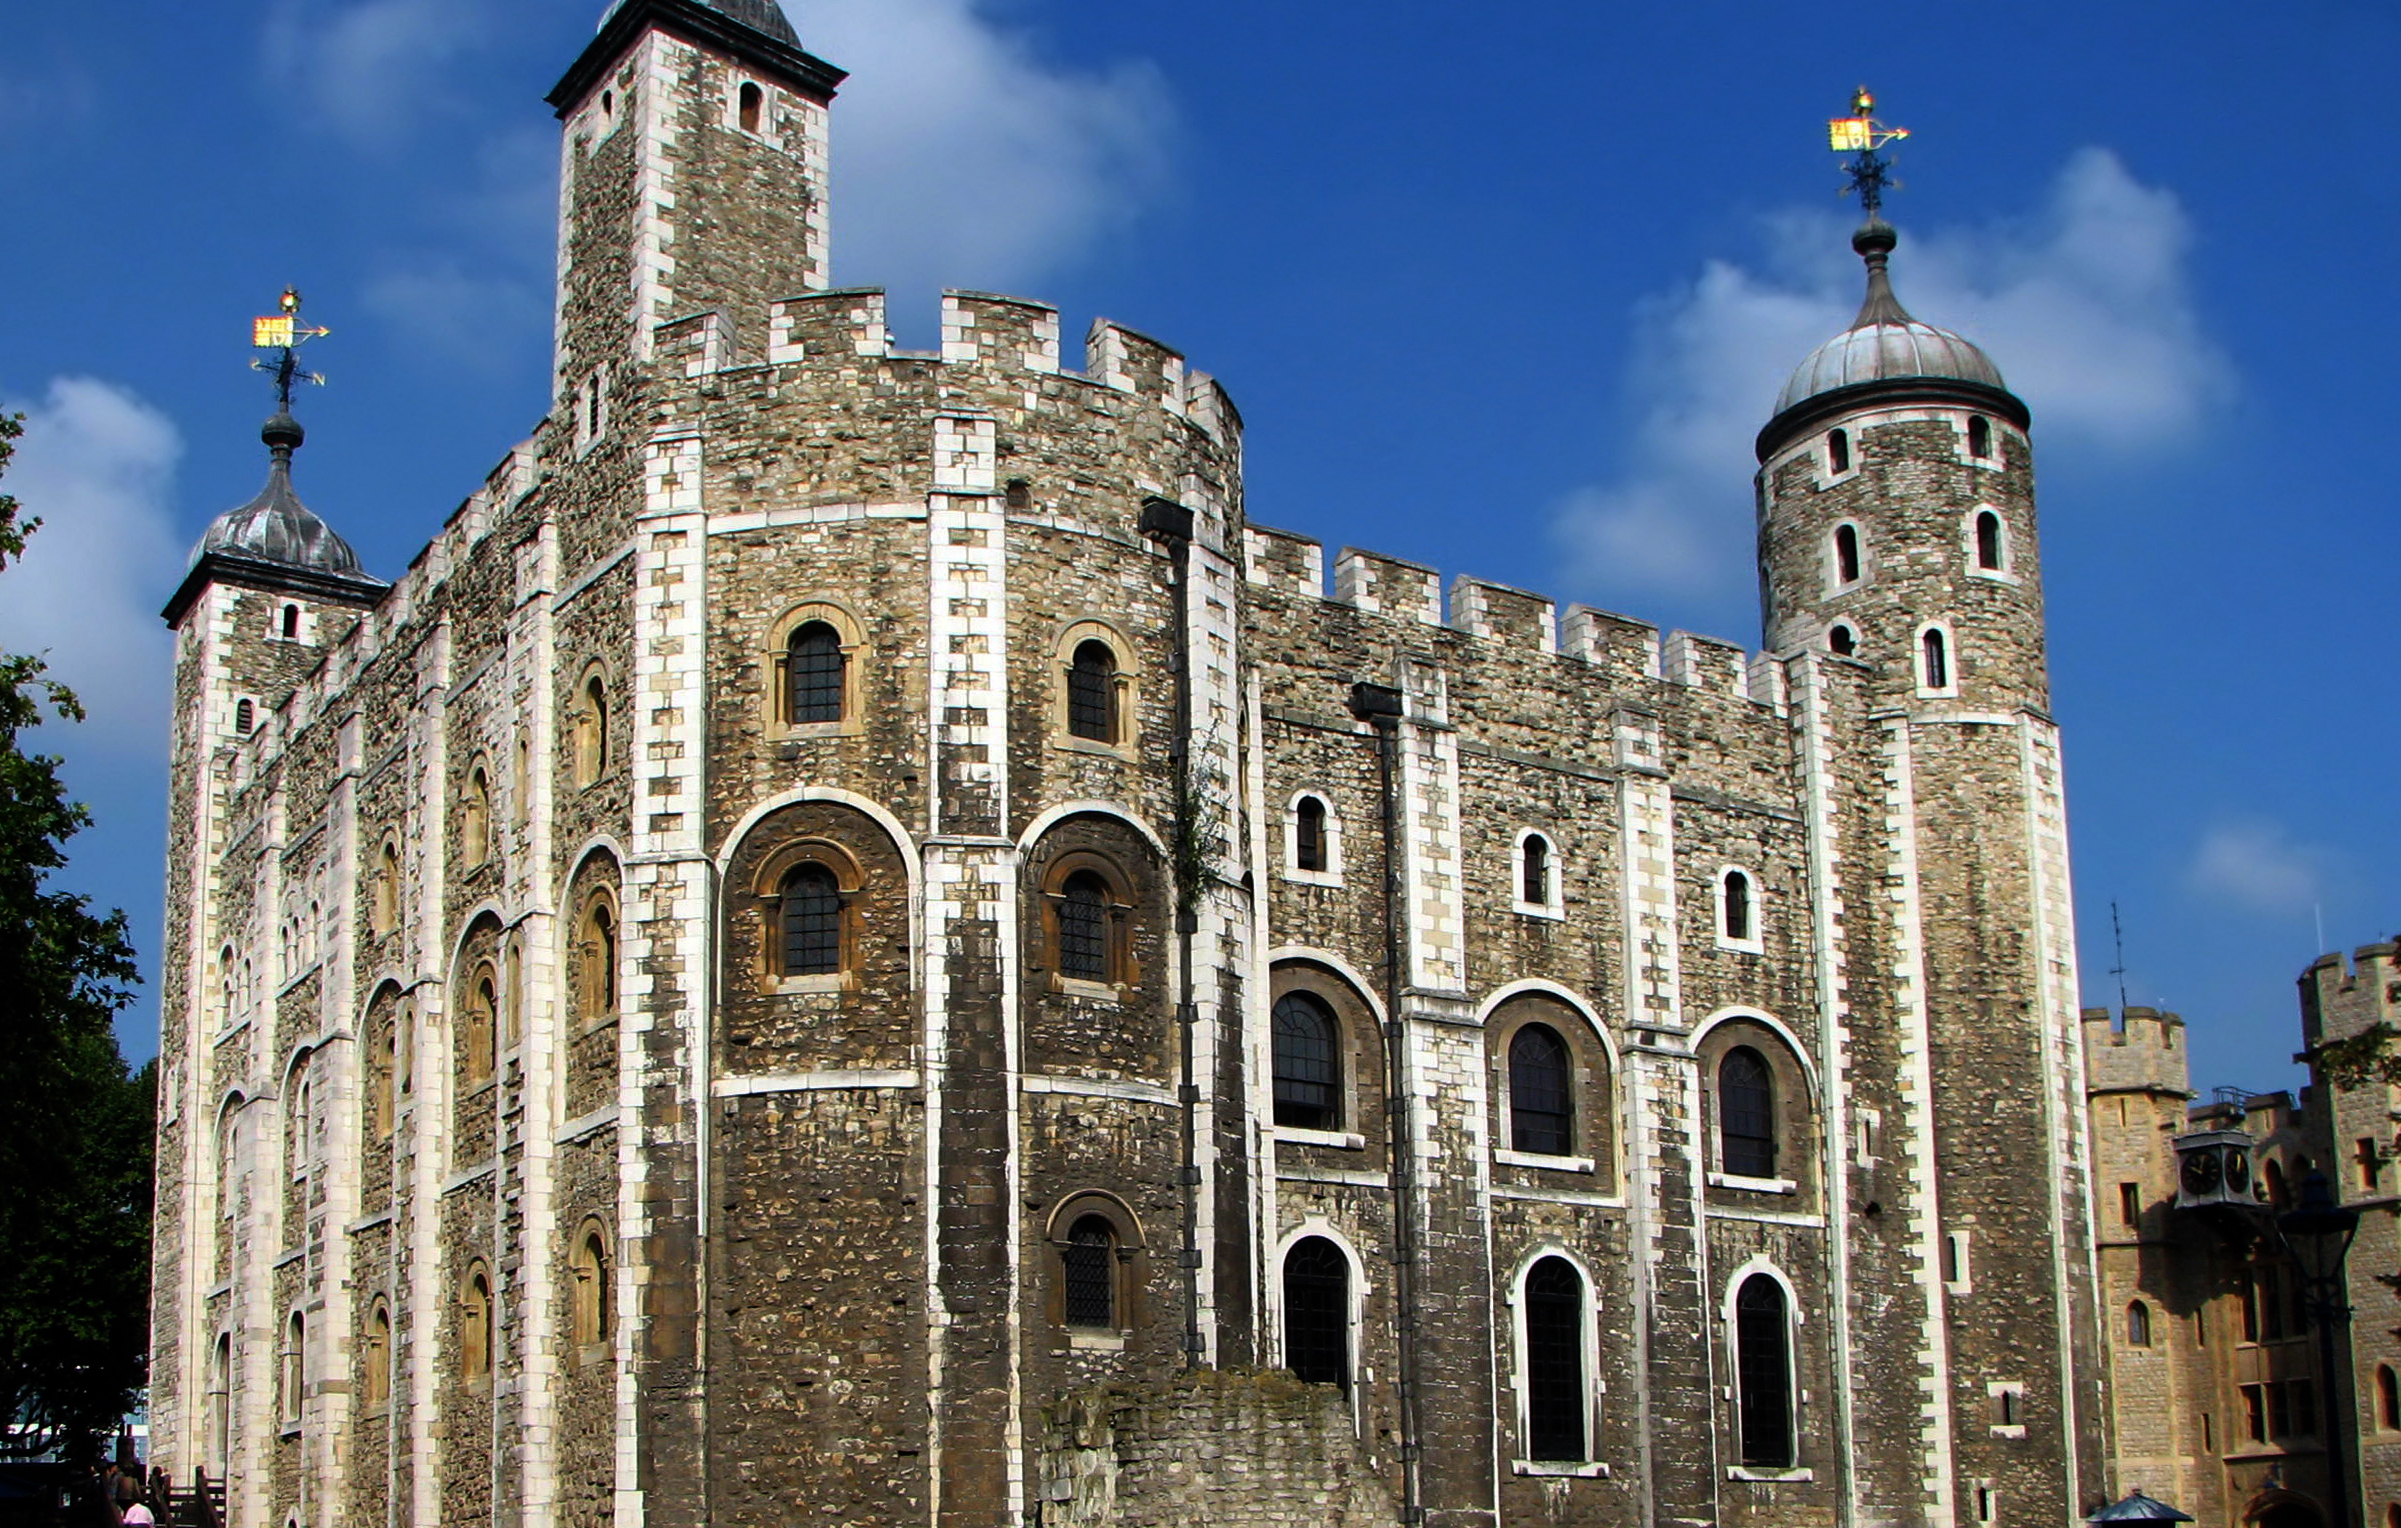 Tower of LondonTower of London